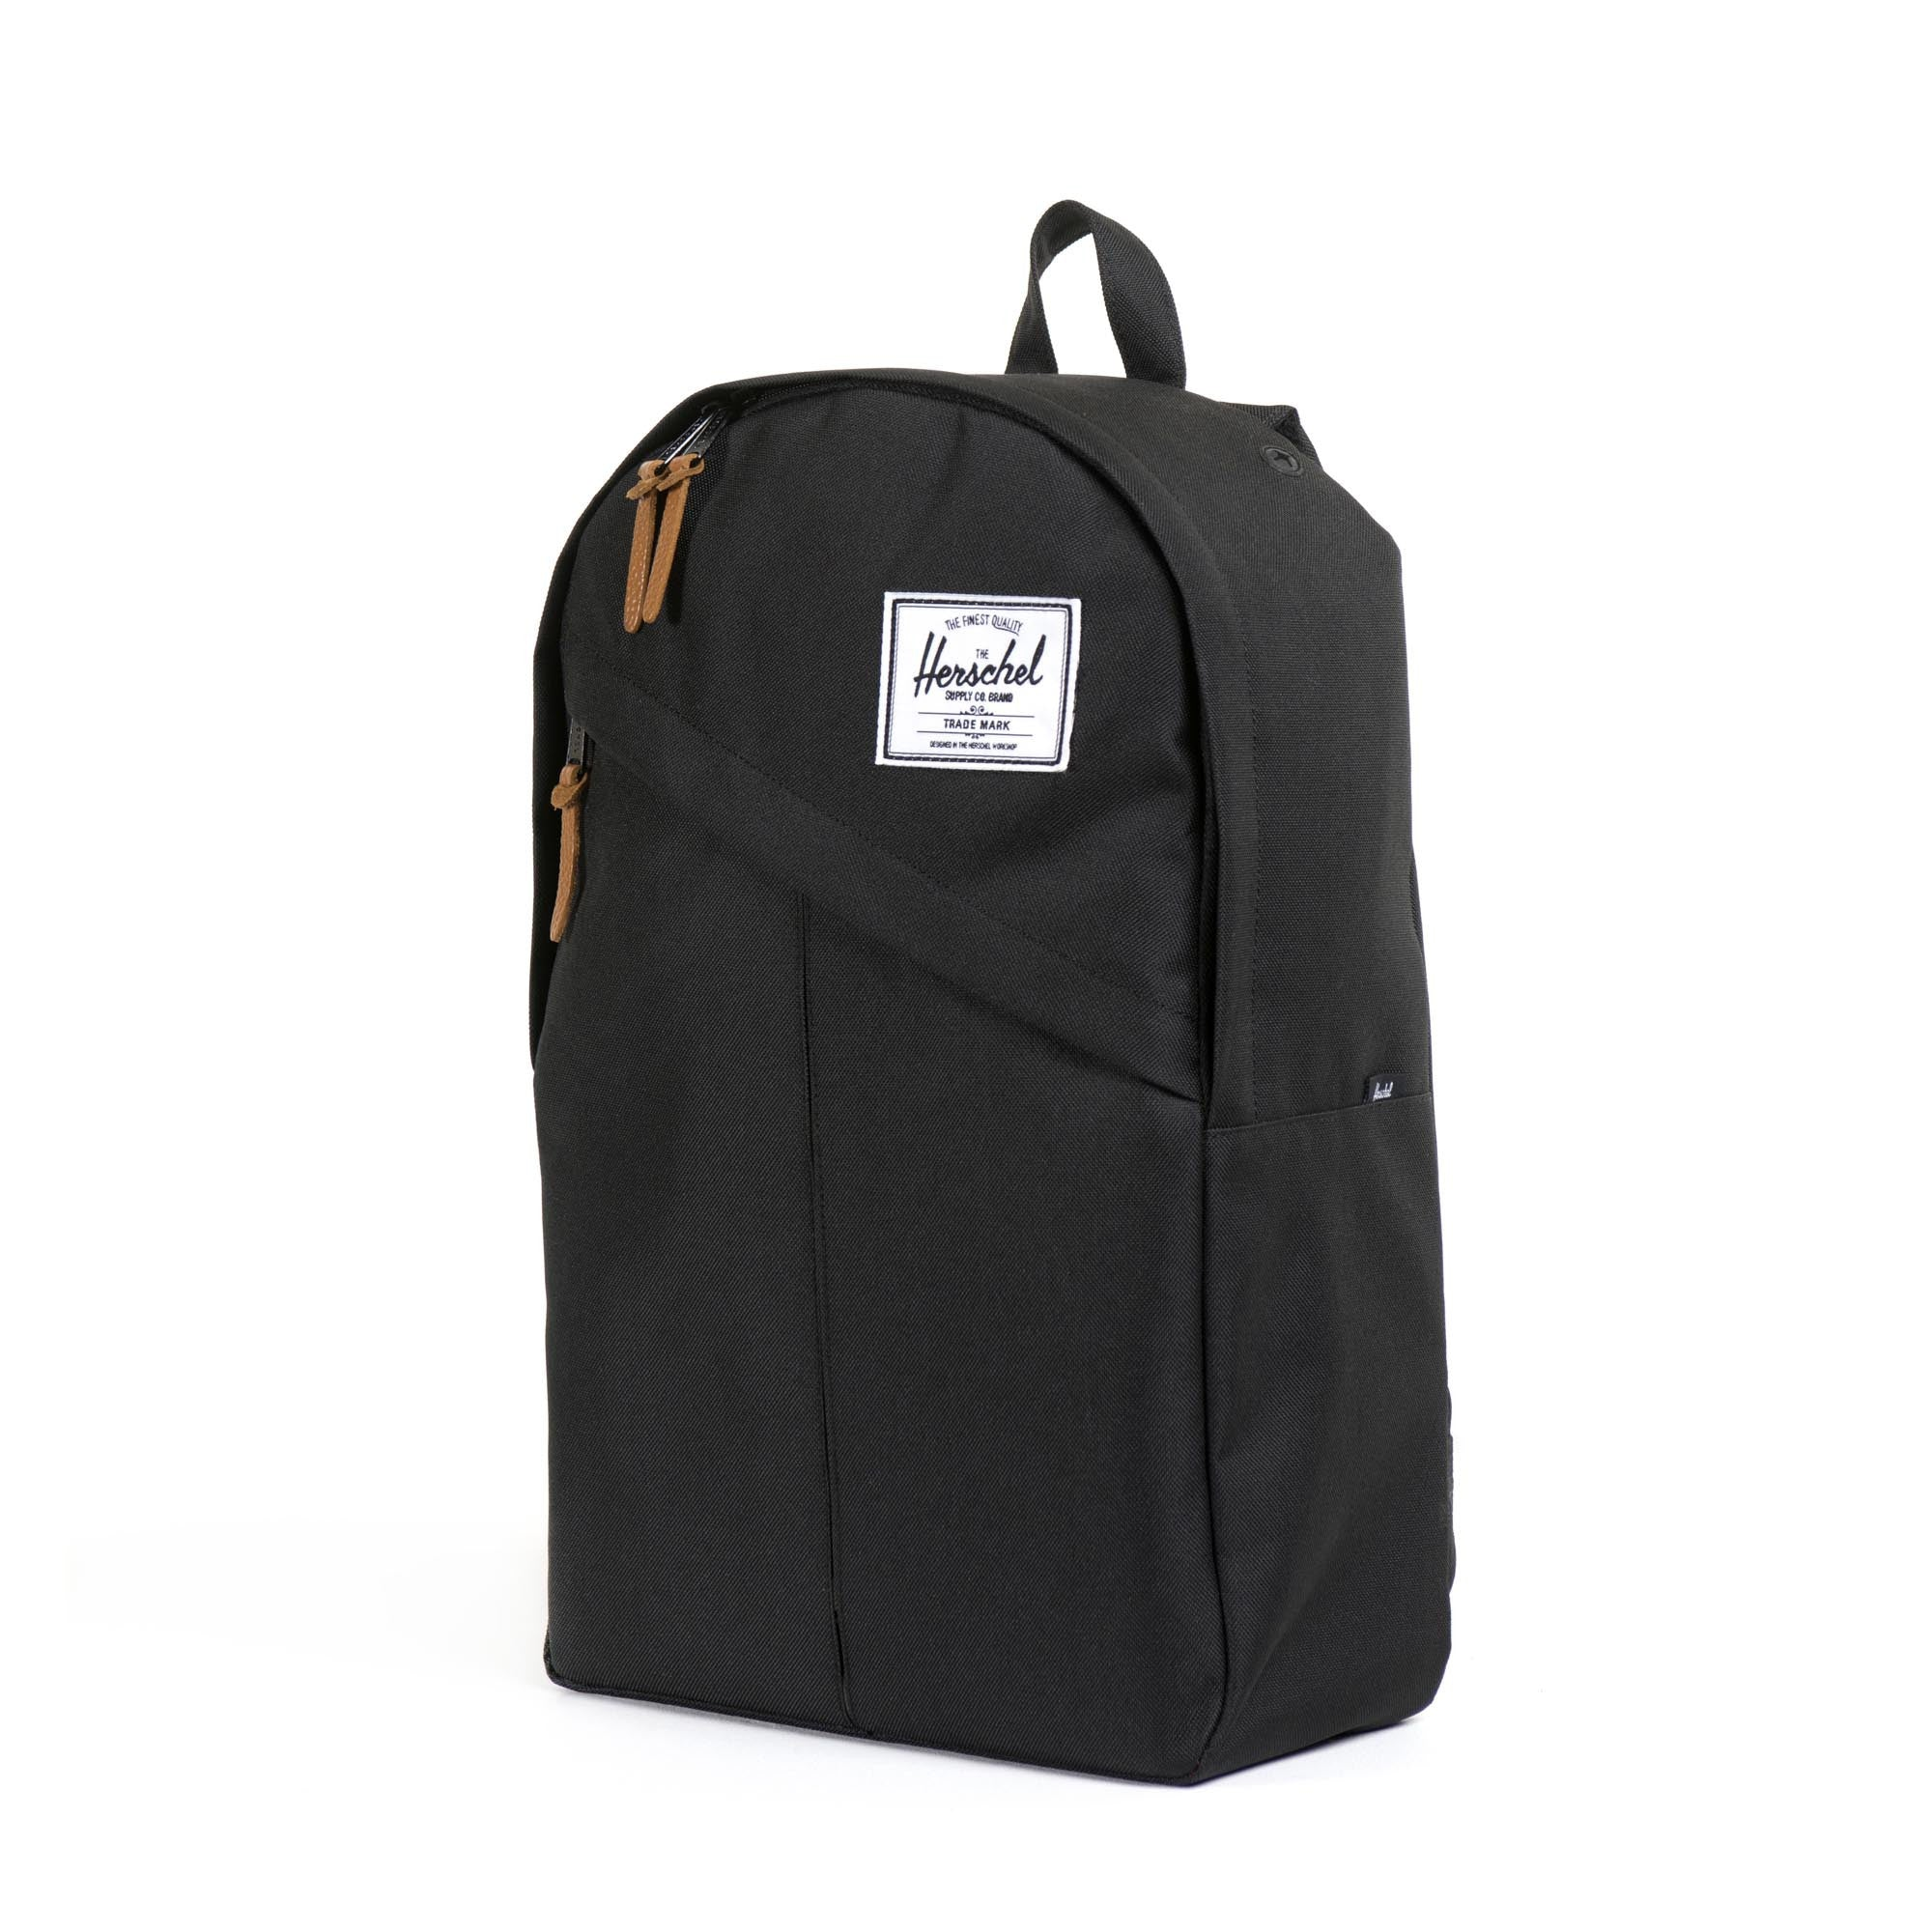 Herschel Supply Co. - Parker Backpack, Black - The Giant Peach